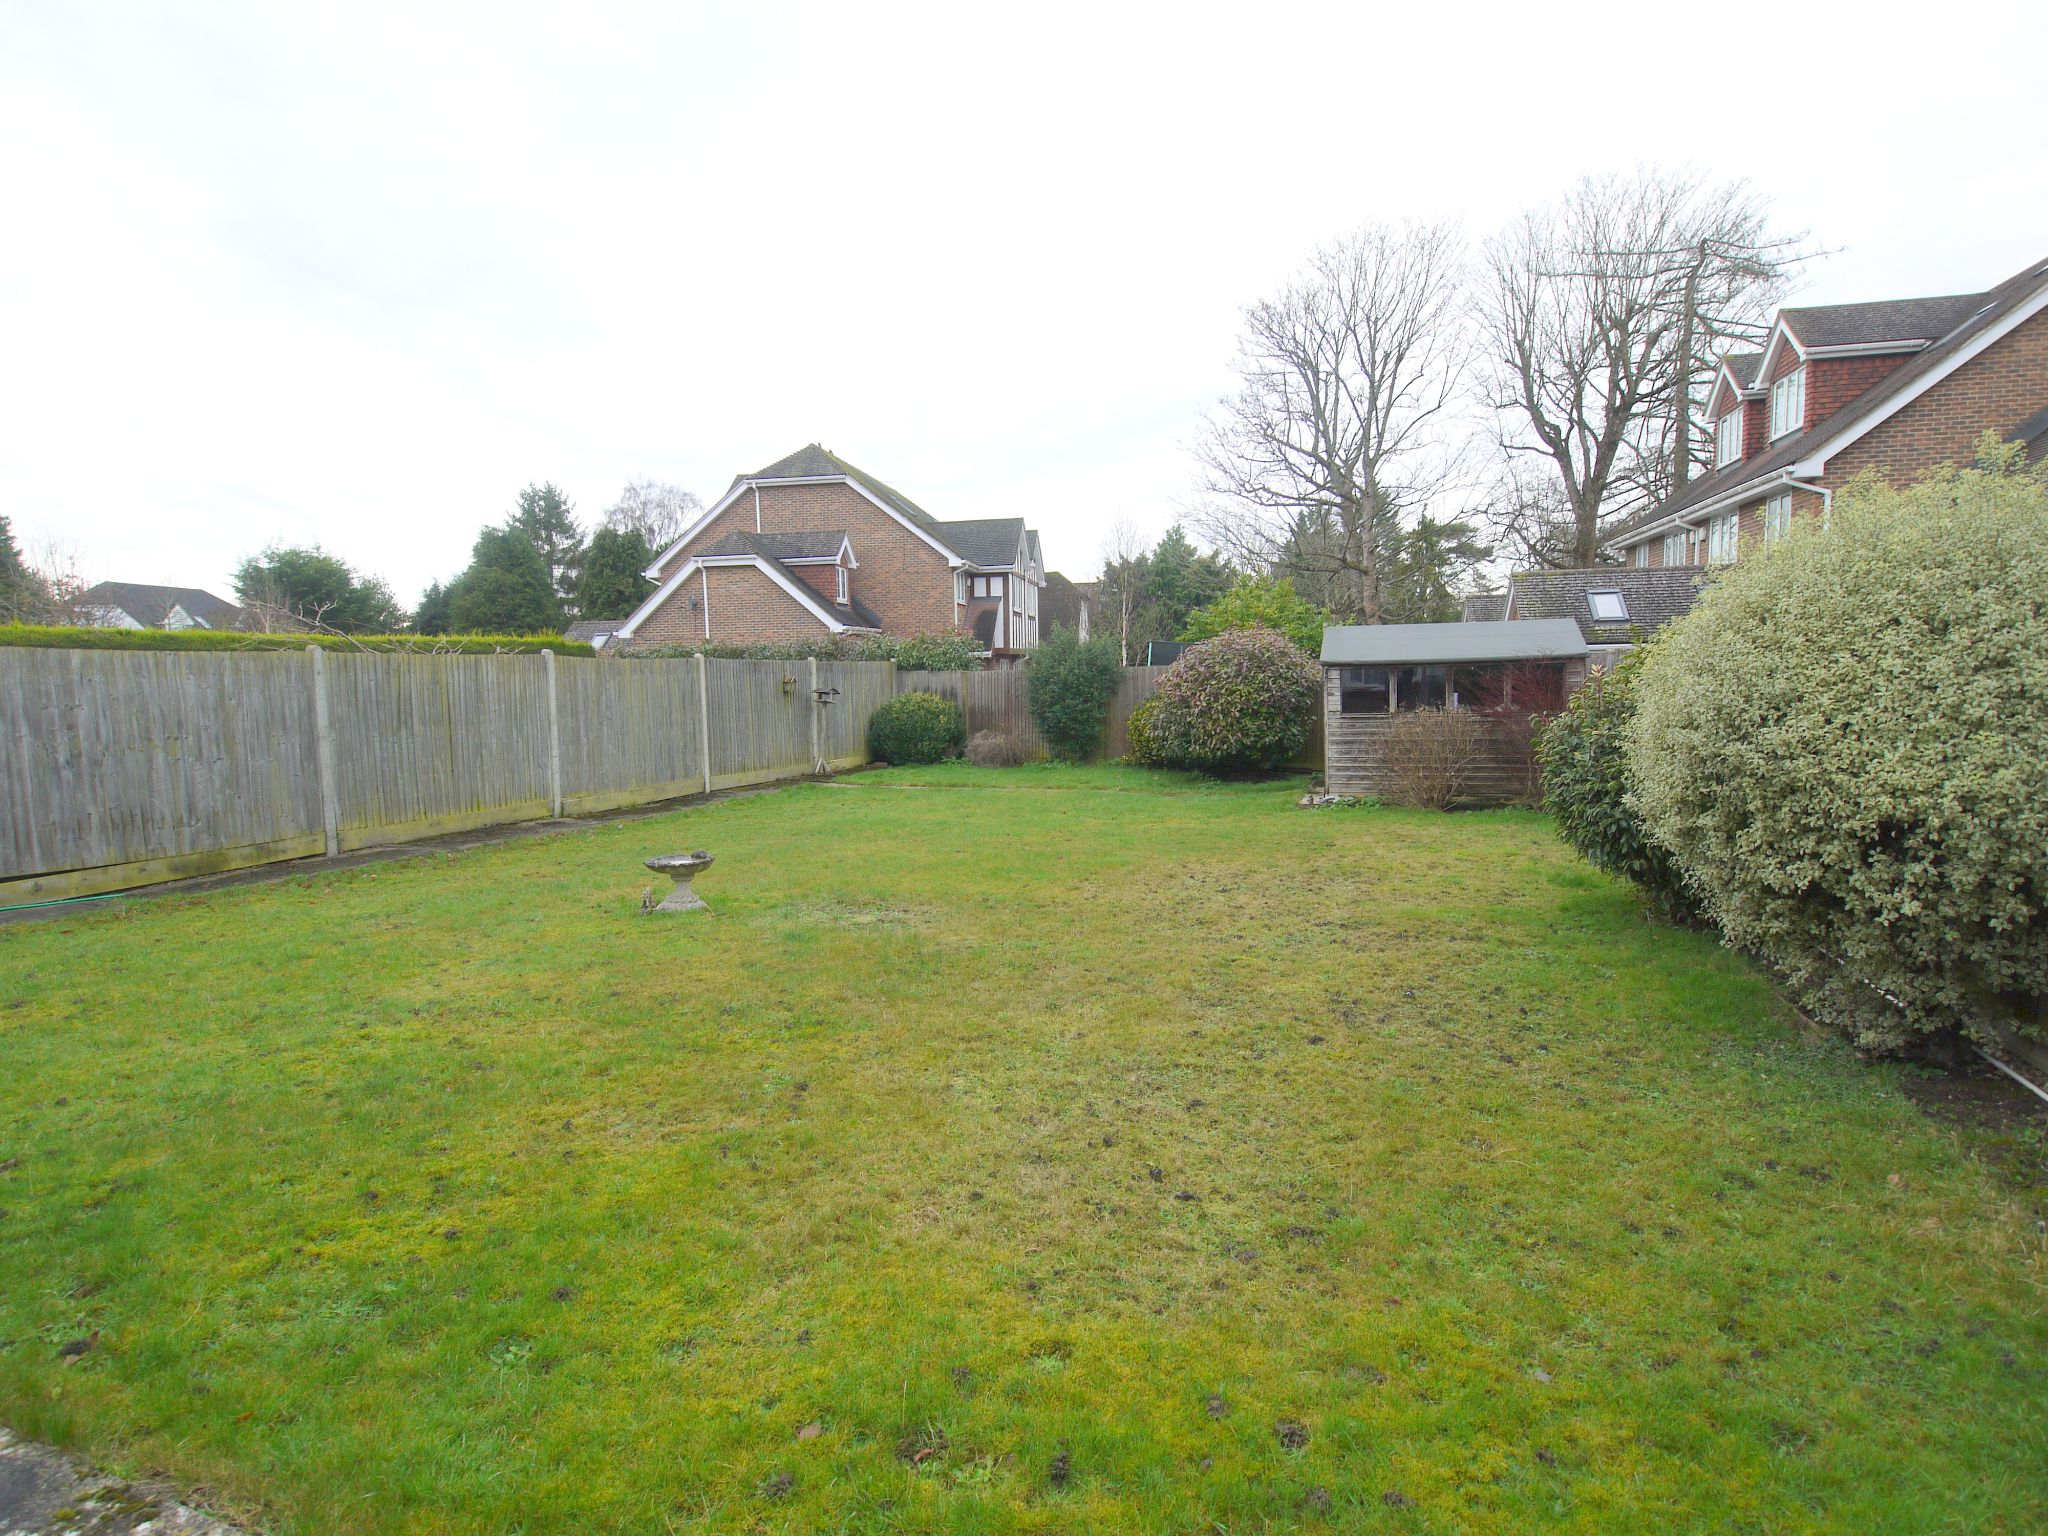 3 bedroom detached bungalow Sold in Sevenoaks - Photograph 8